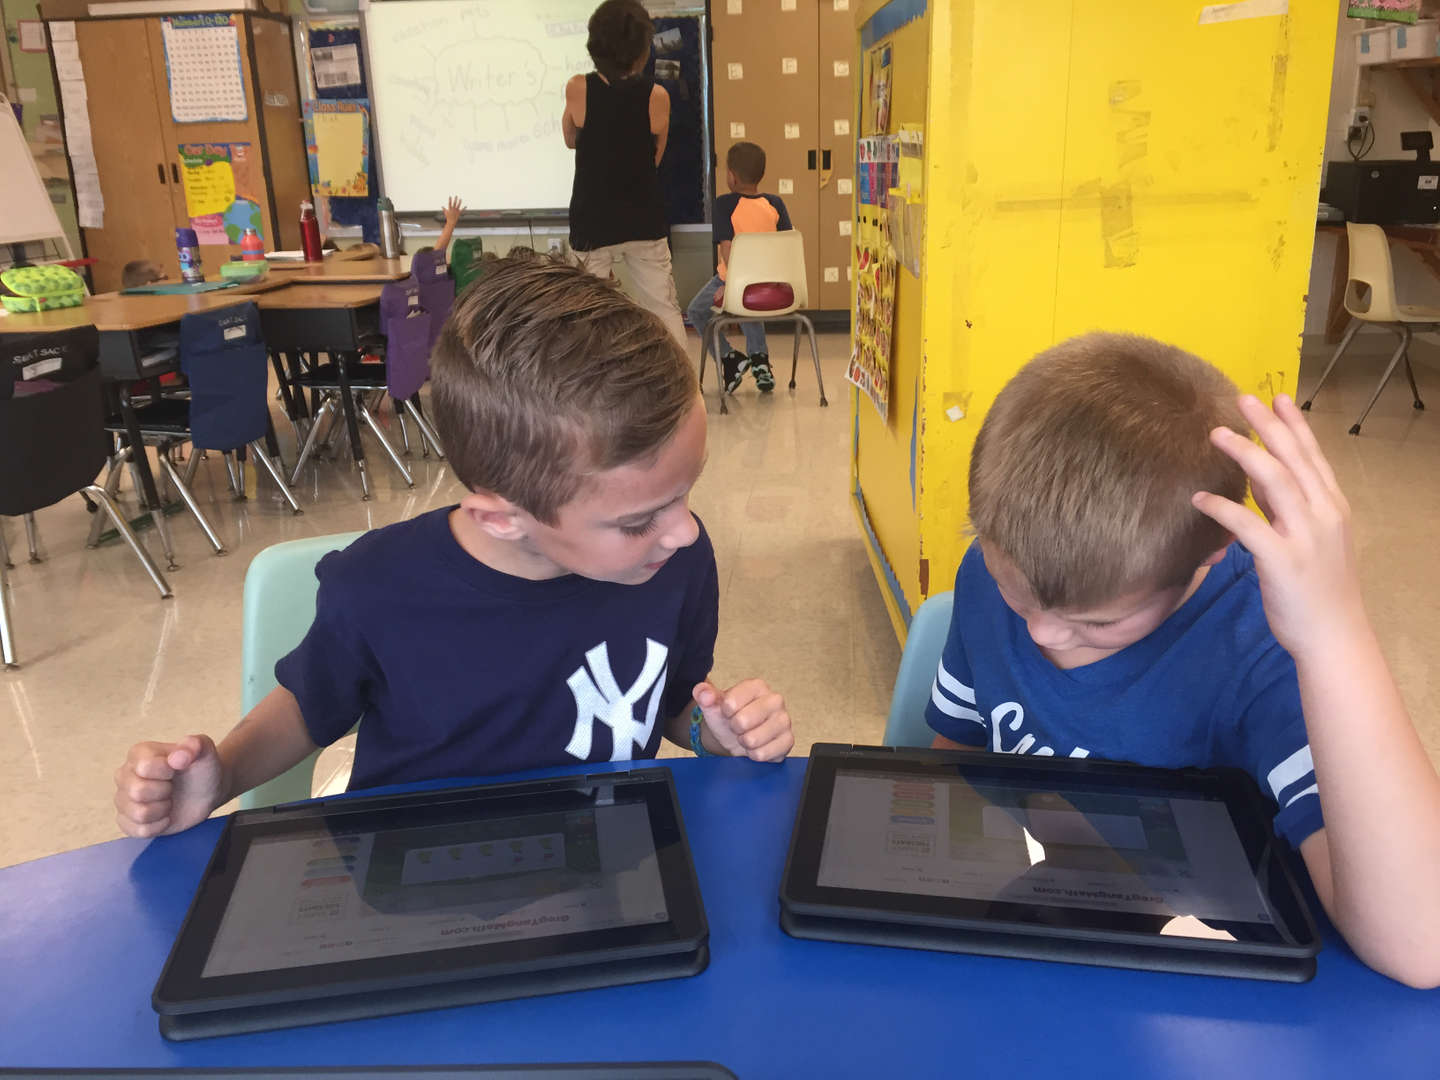 2 students working on math problems on iPads